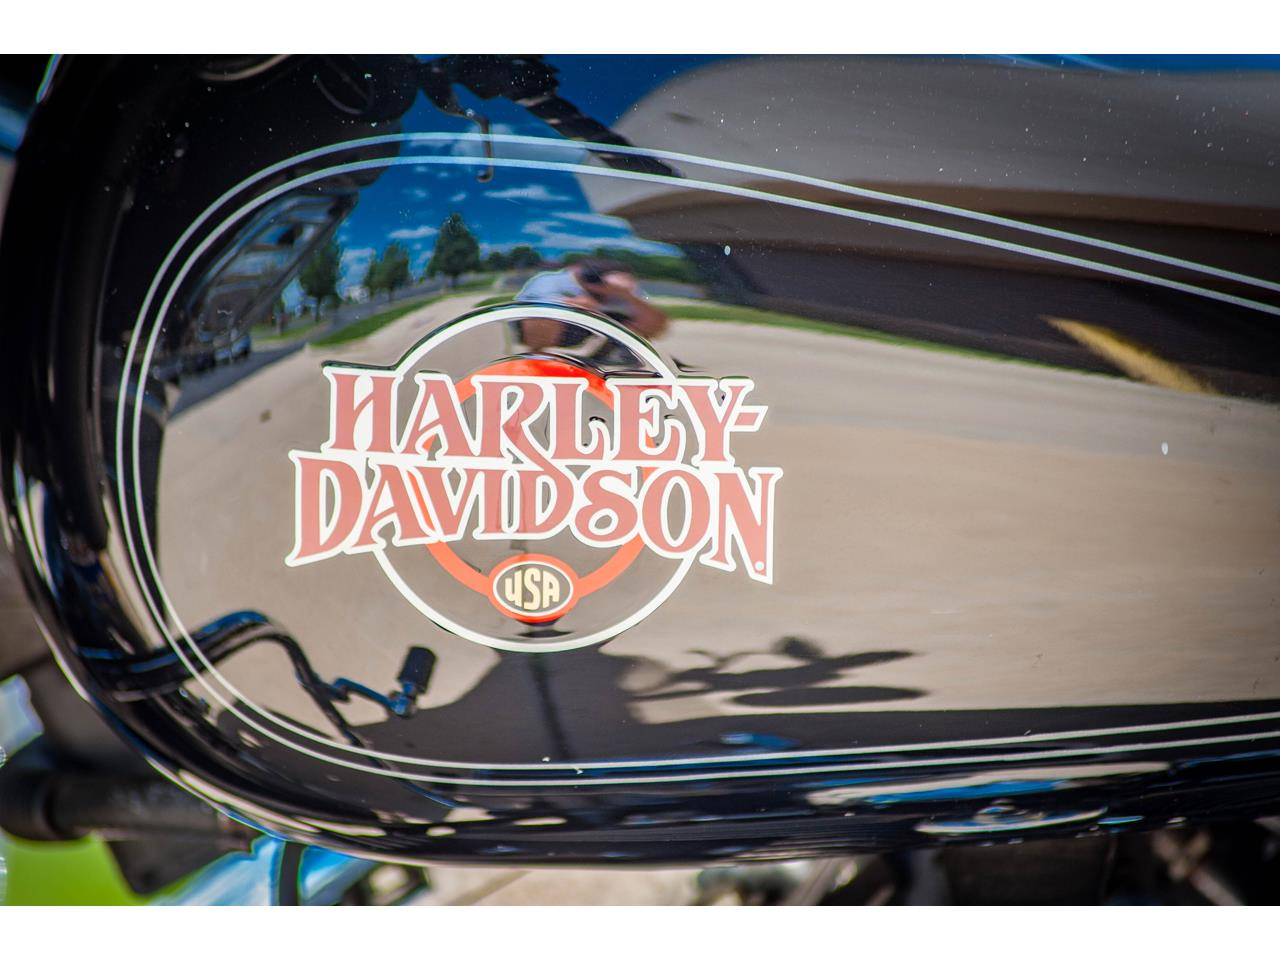 2004 Harley-Davidson Motorcycle for sale in O'Fallon, IL – photo 78